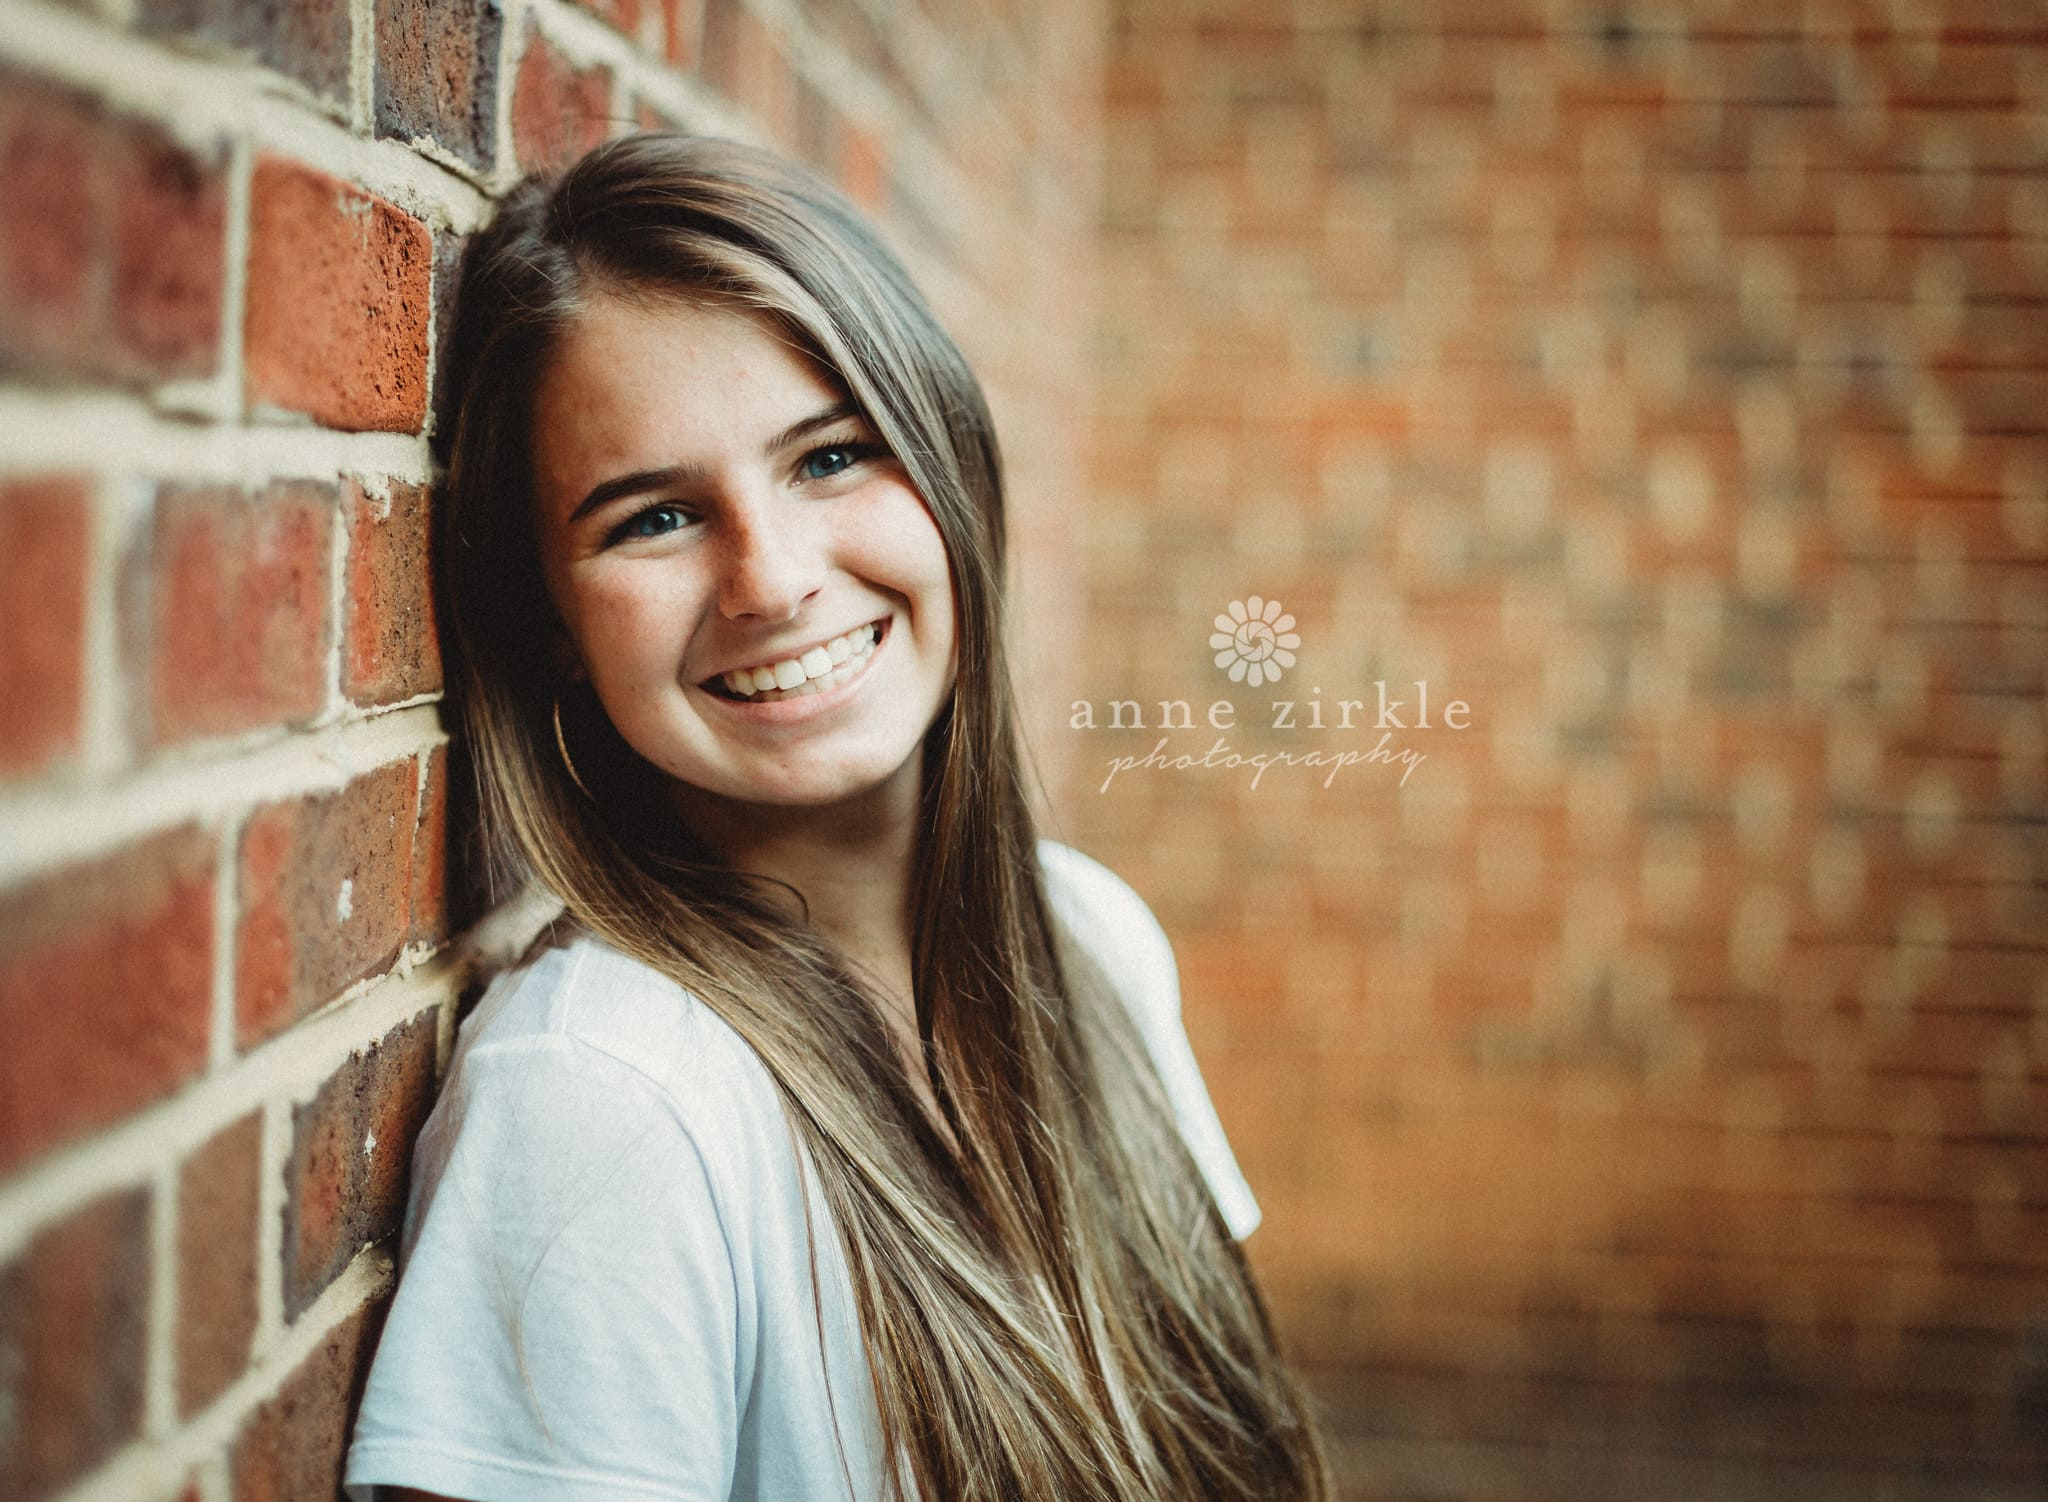 senior girl standing against brick wall #mooresville #northcarolina #davidson #lakenorman #southiredell #pinelakeprep #highschool #highschoolsenior #highschoolseniors #seniors